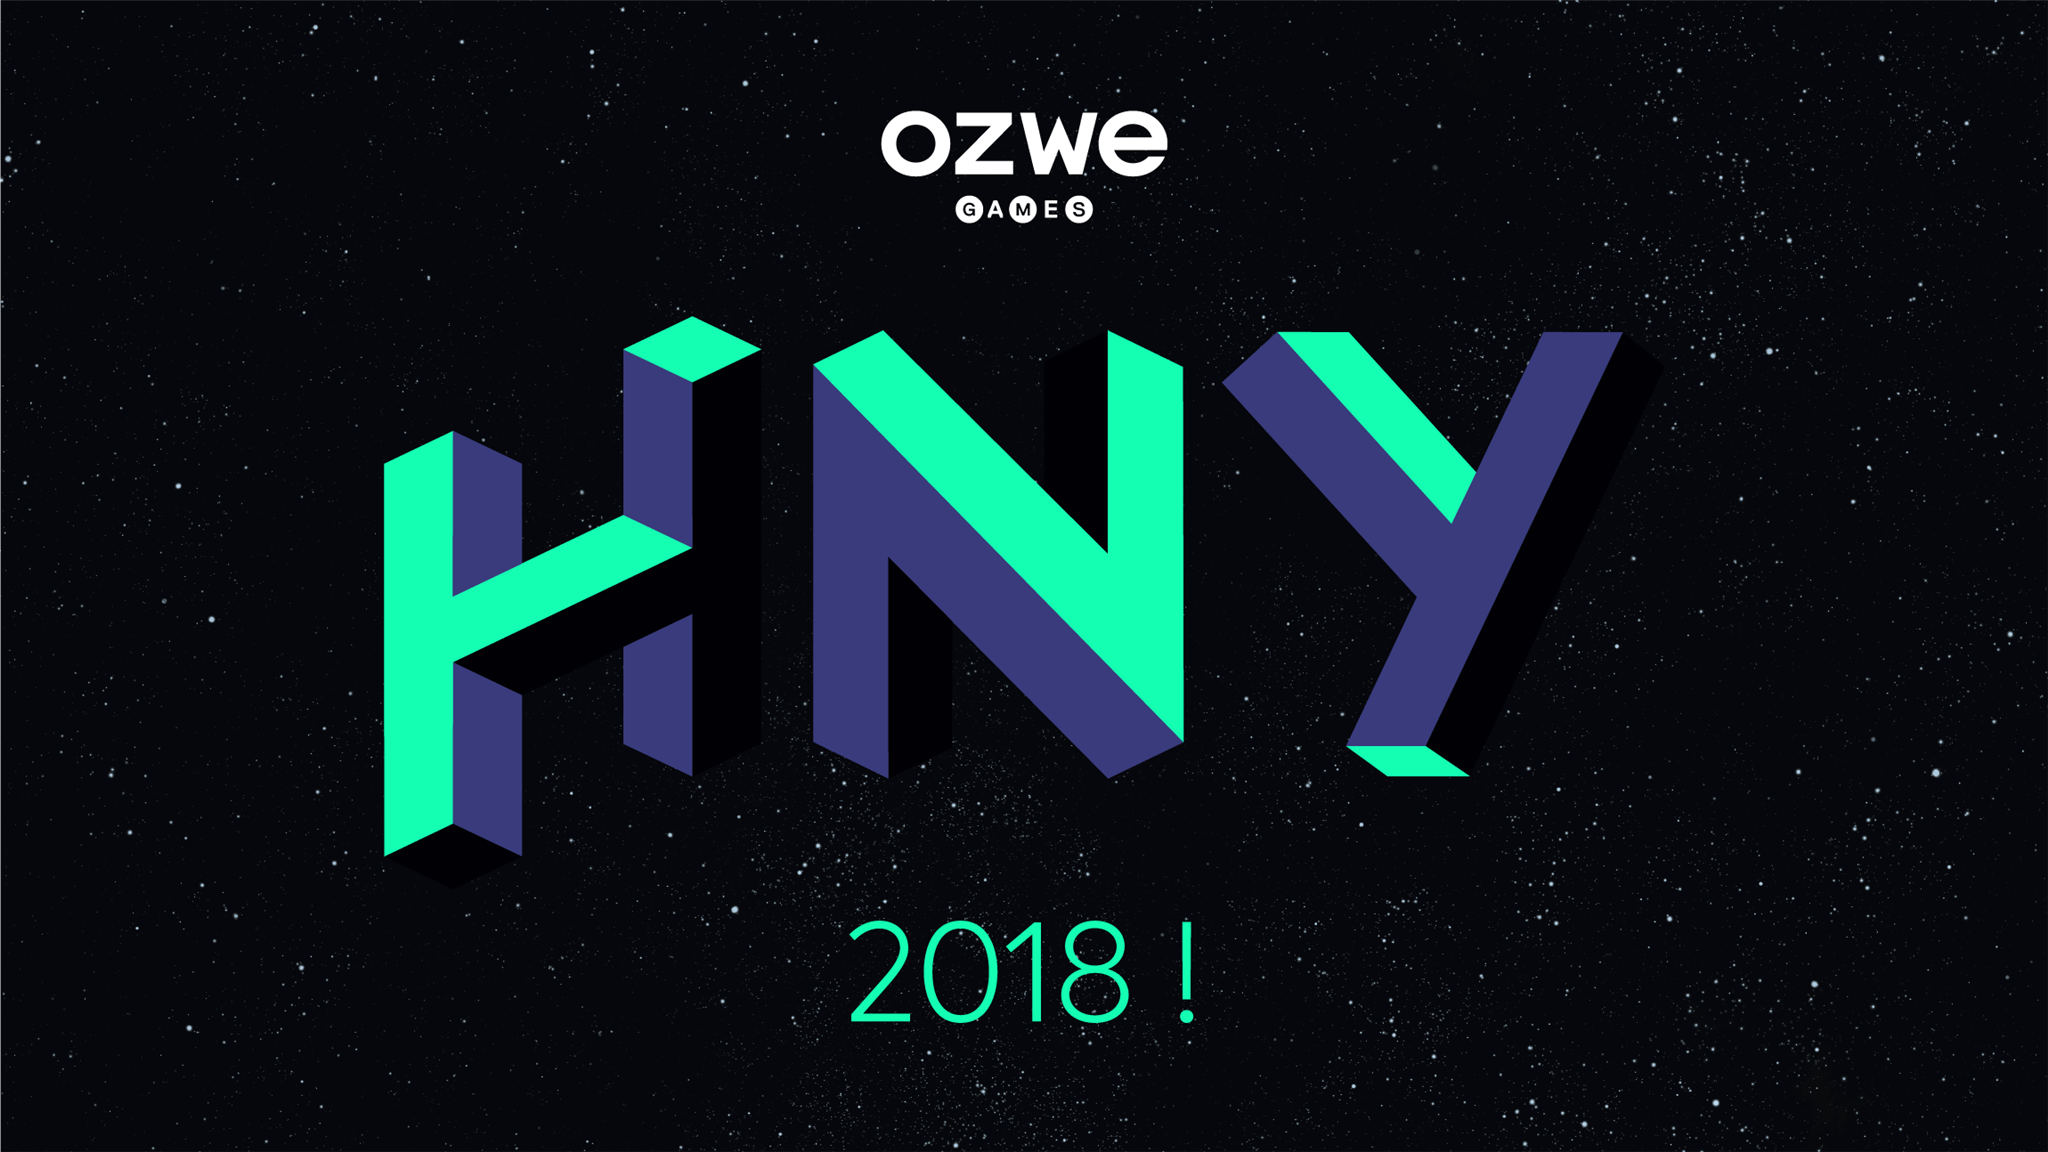 Happy New Year 2018 from OZWE!